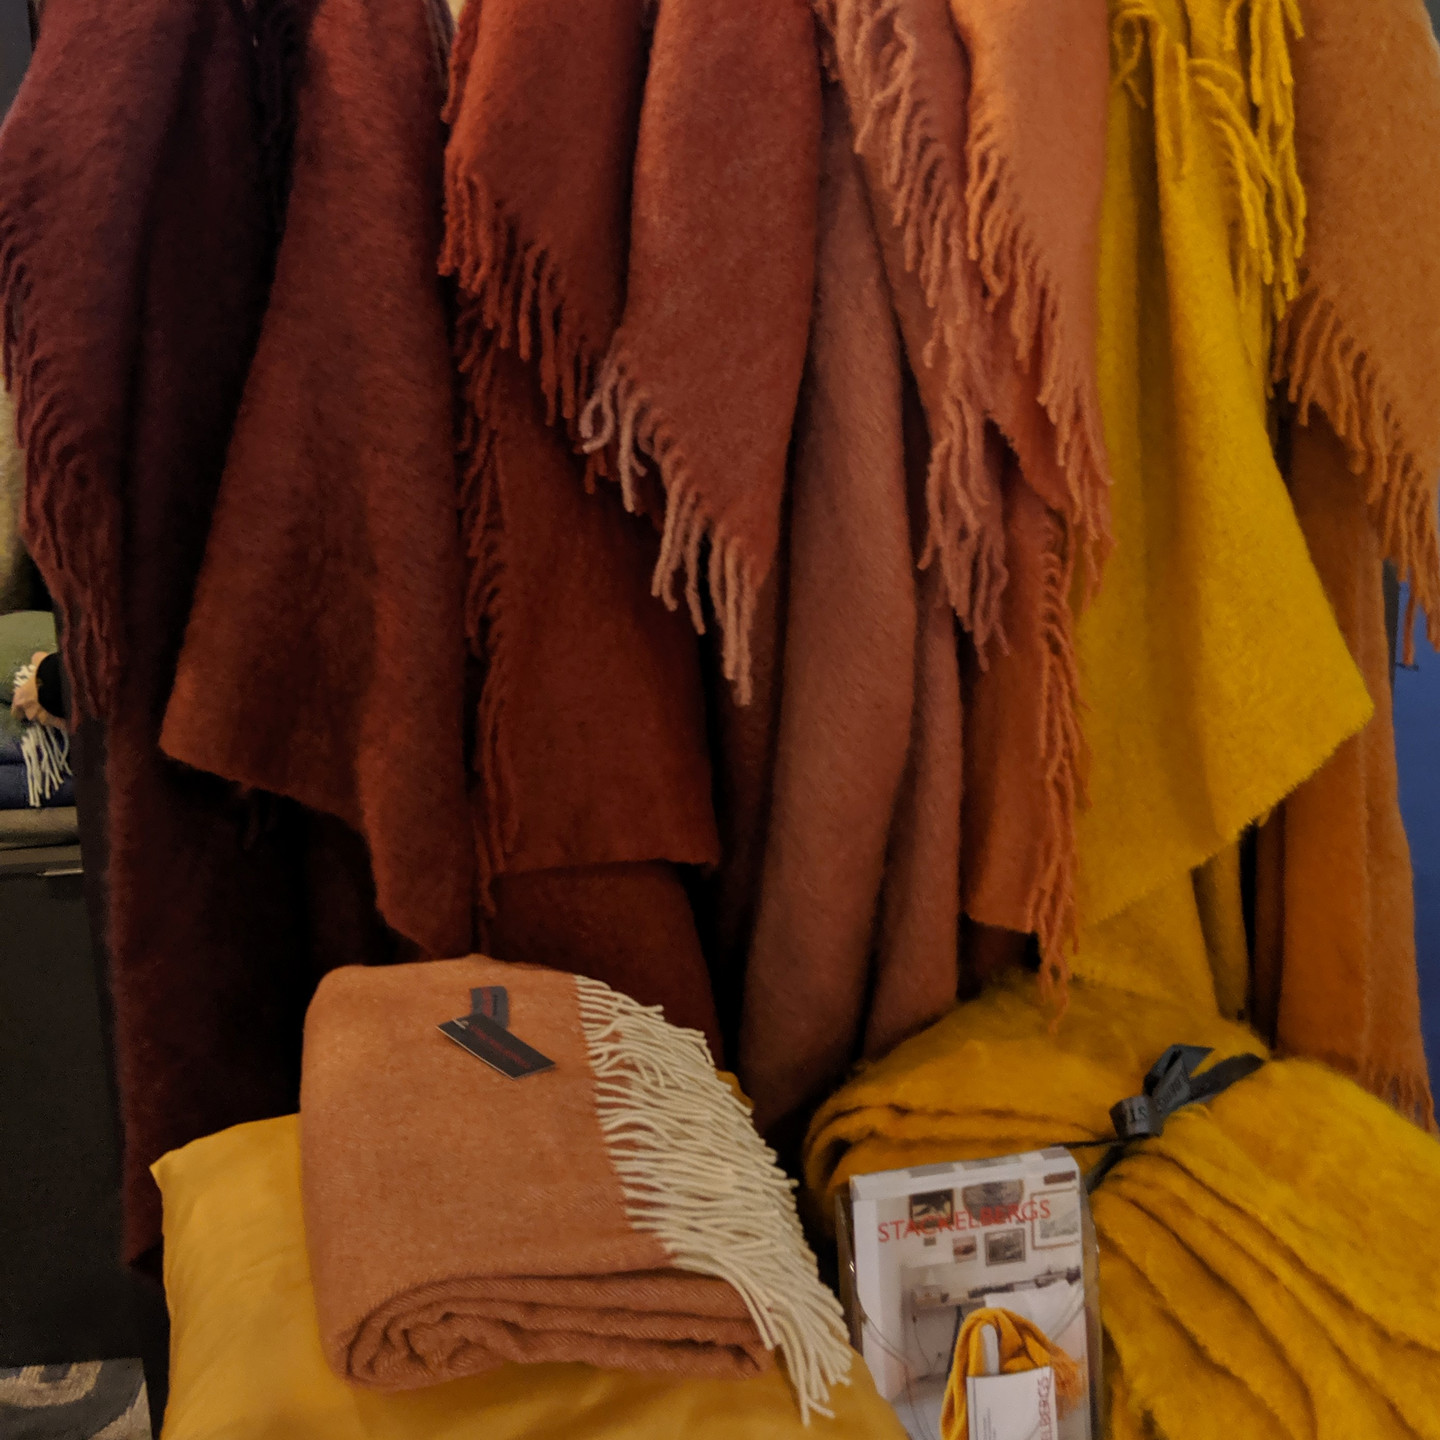 Assorted Wool Throw Blankets in Shades of Red, Orange, and Yellow